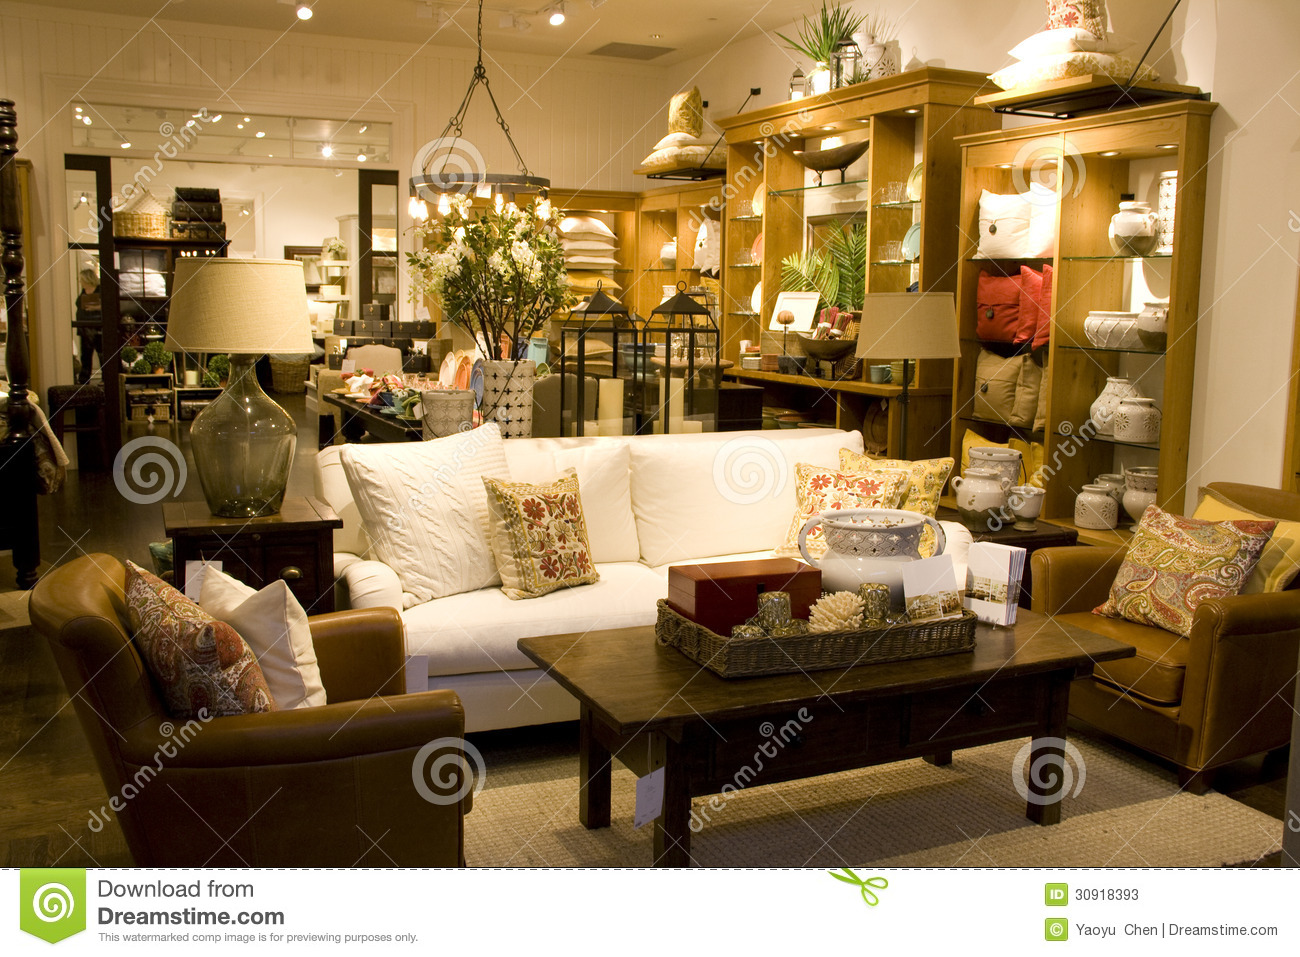 Furniture And Home Decor Store Stock Image - Image of indoors ...